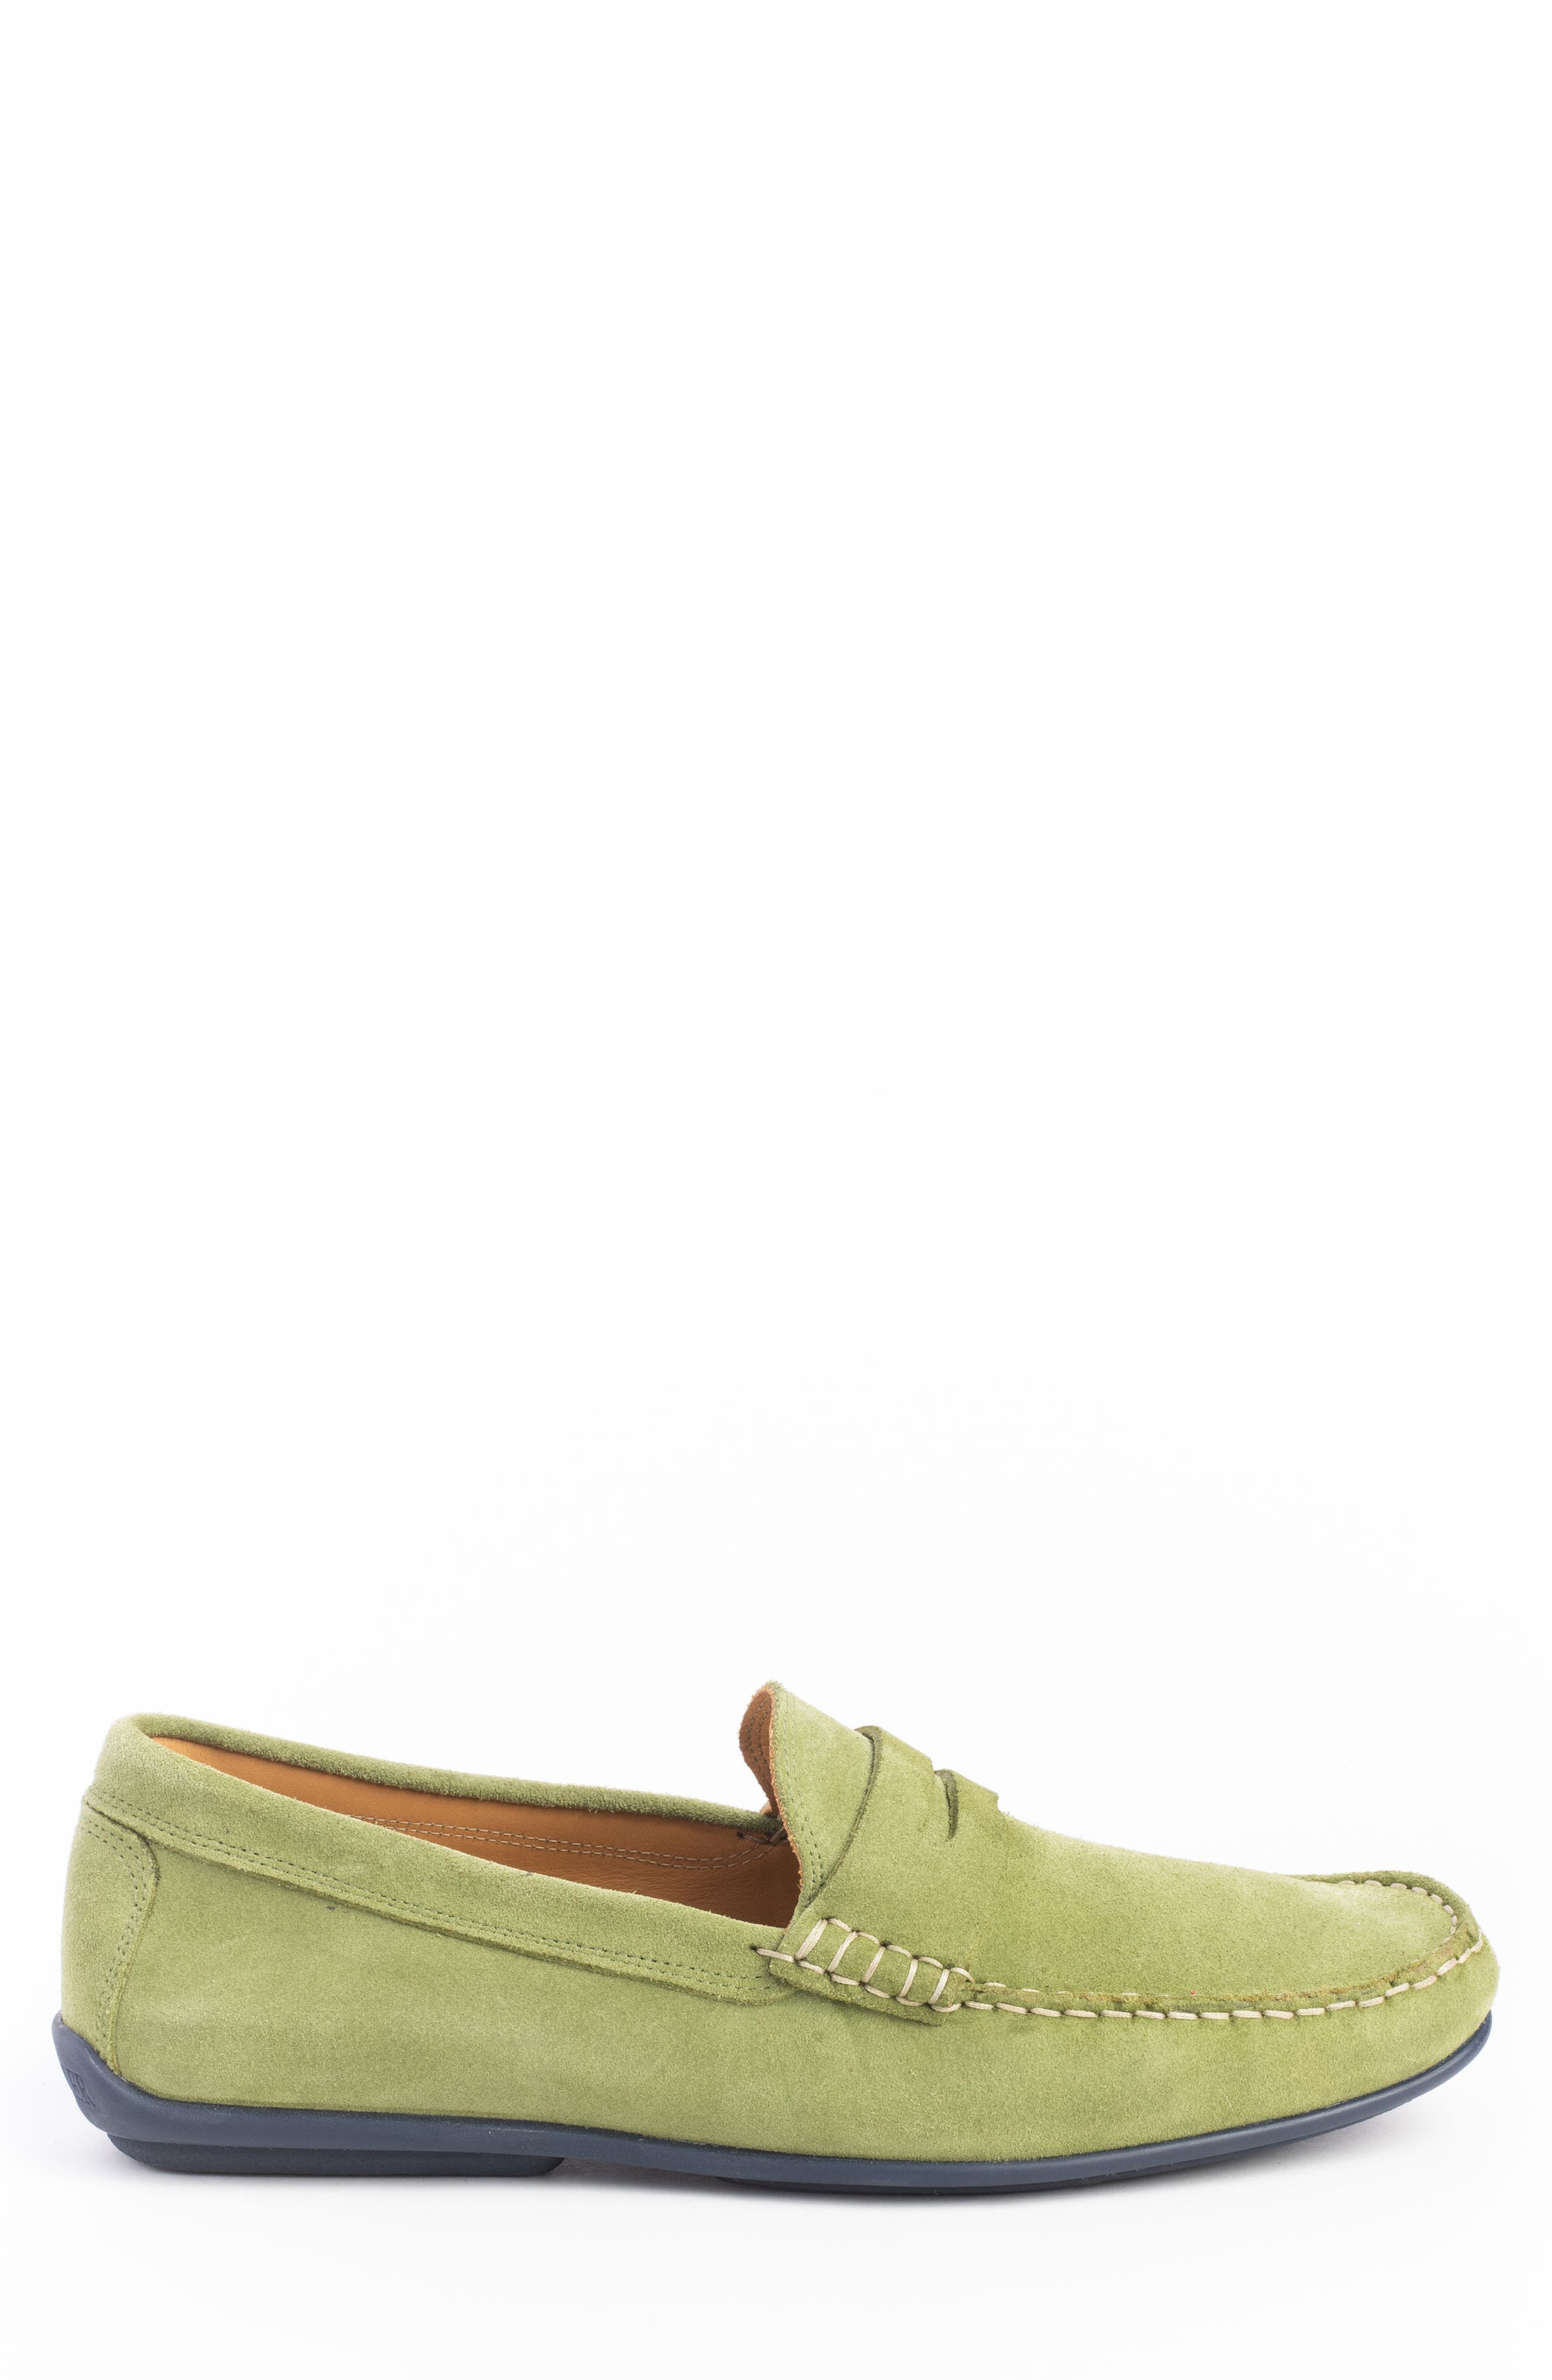 'Parkers' Penny Loafer,                             Alternate thumbnail 3, color,                             SPRING GREEN